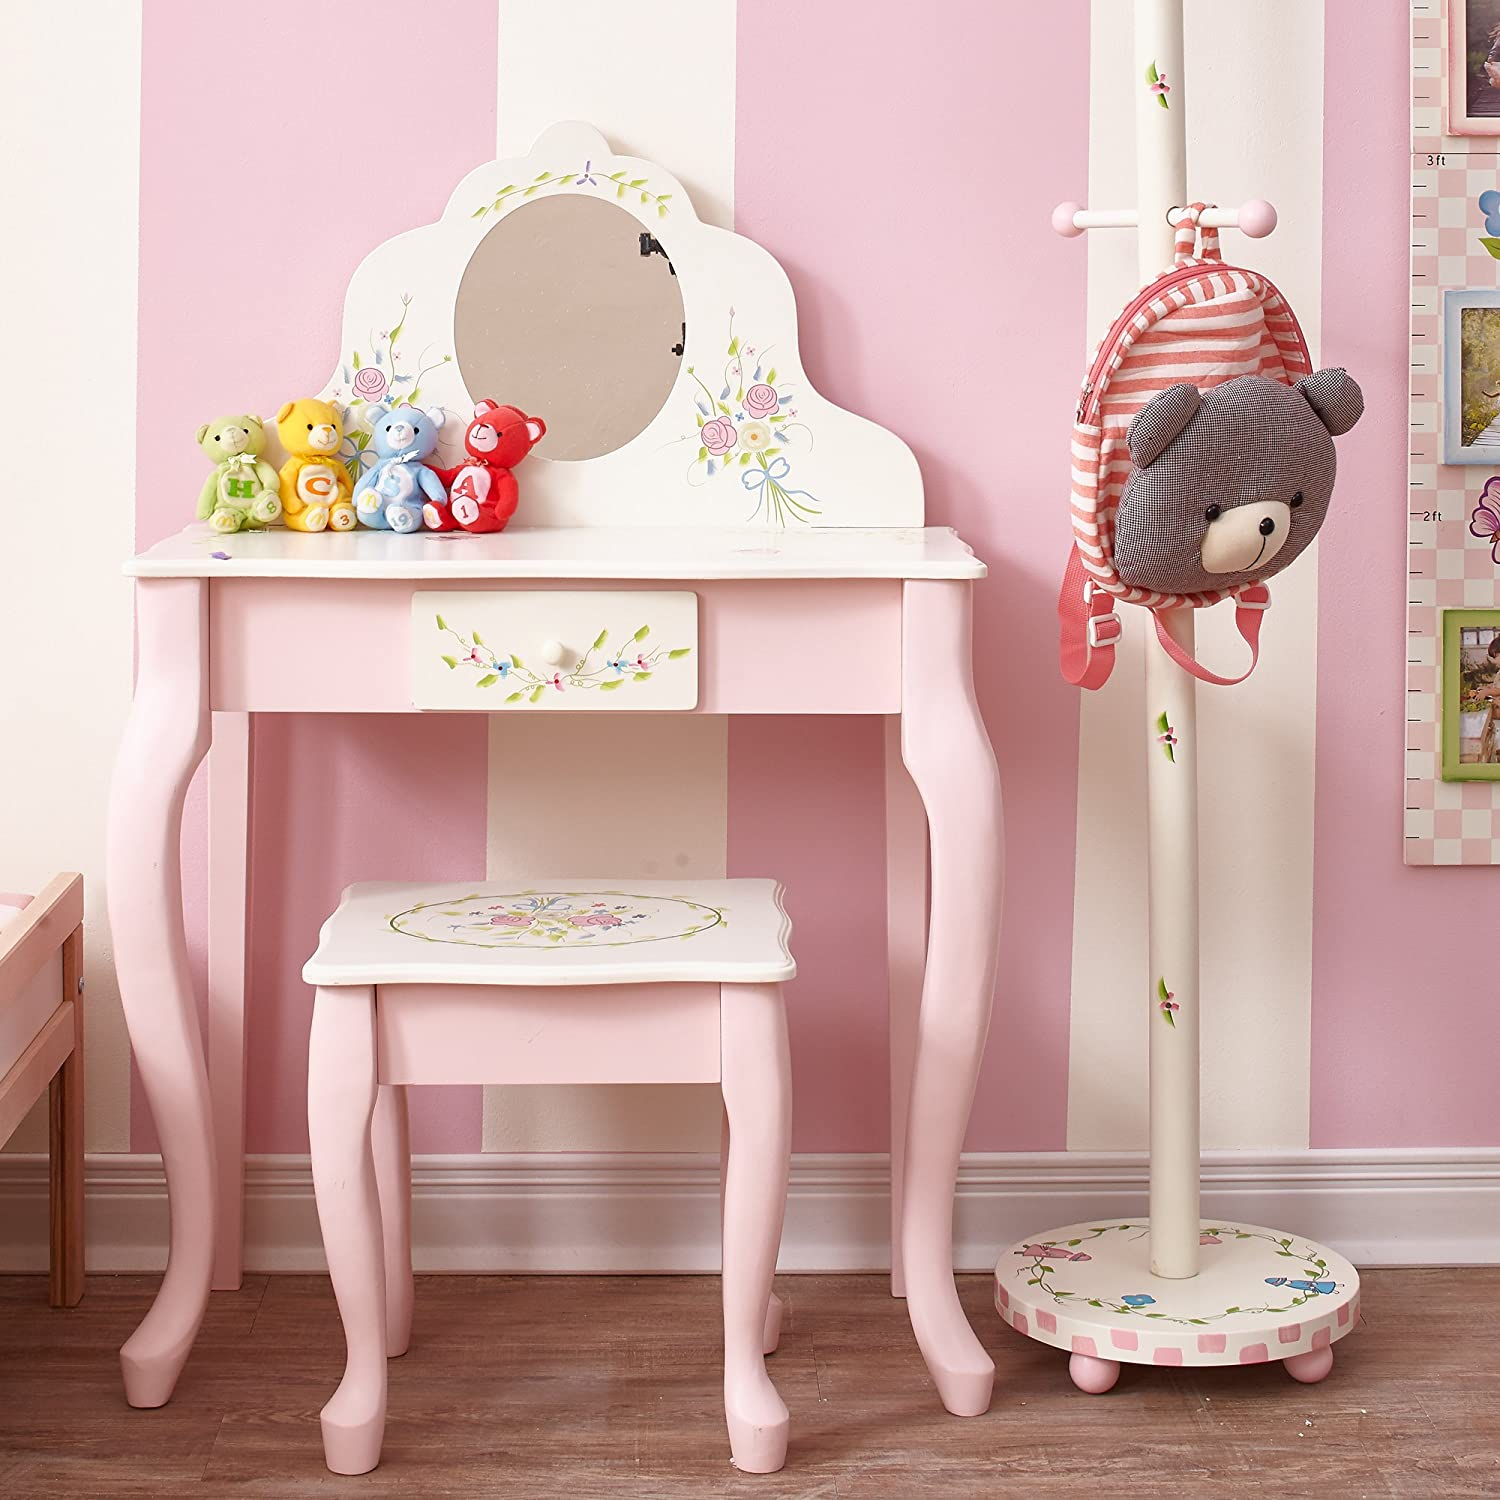 Fantasy Fields – Bouquet Thematic Kids Classic Vanity Table and Stool Set with Mirror Imagination Inspiring Hand Crafted Hand Painted Details Non-Toxic, Lead Free Water-based Paint